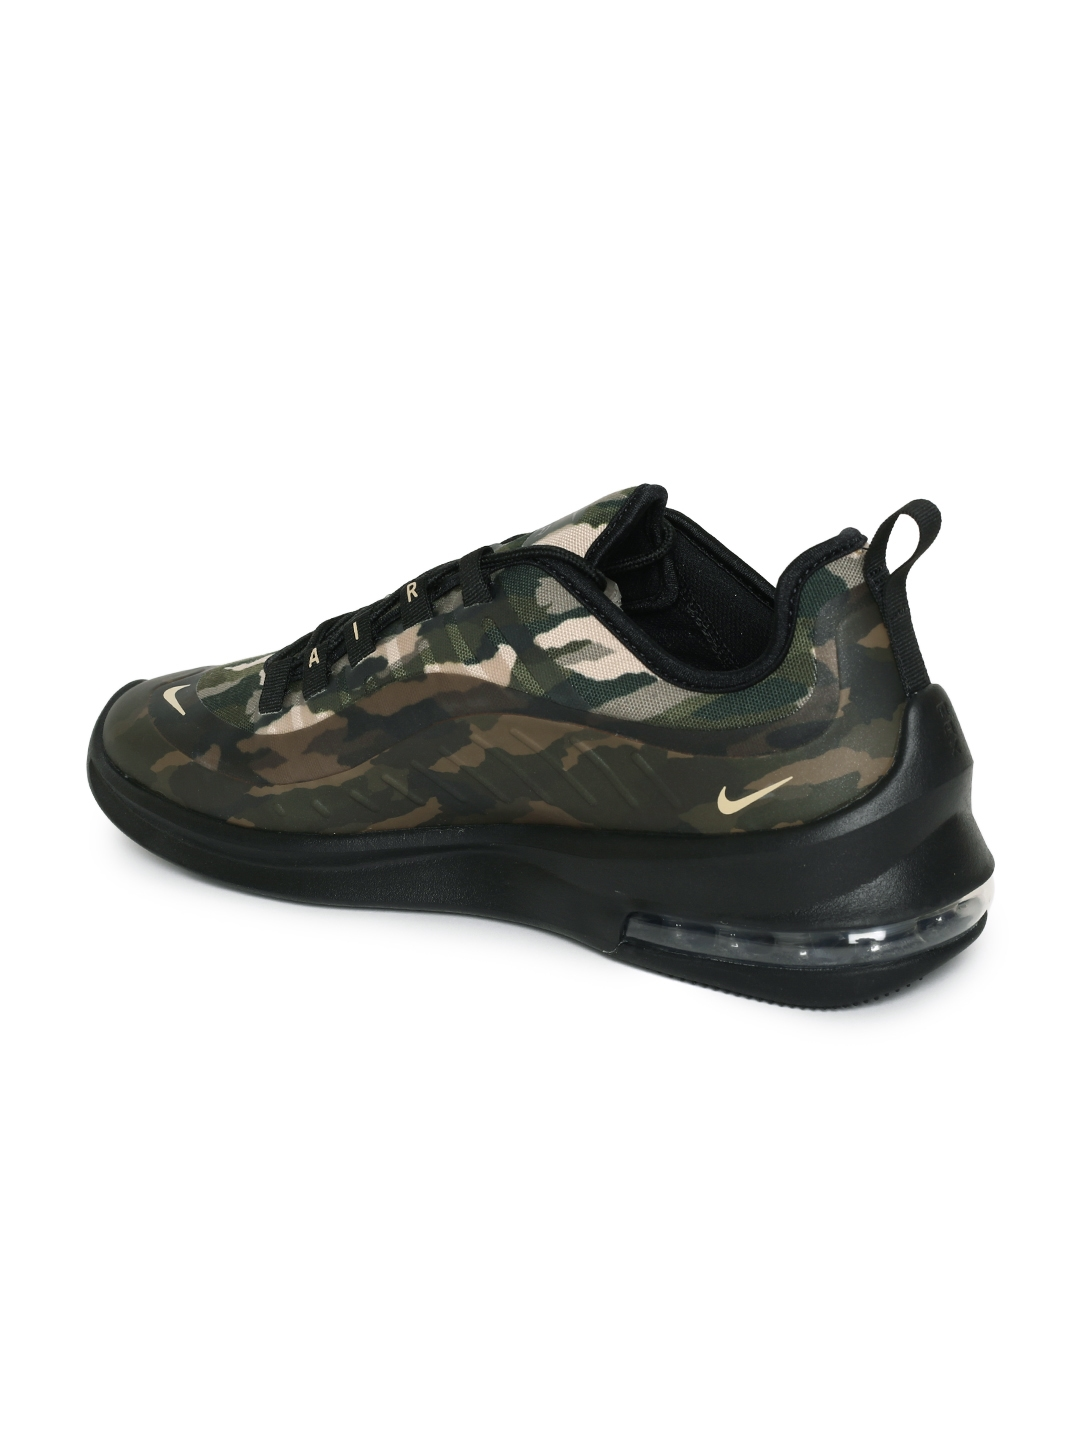 Buy Nike Men Black   Olive AIR MAX AXIS PREM Sneakers - Casual Shoes ... 1581b65eb